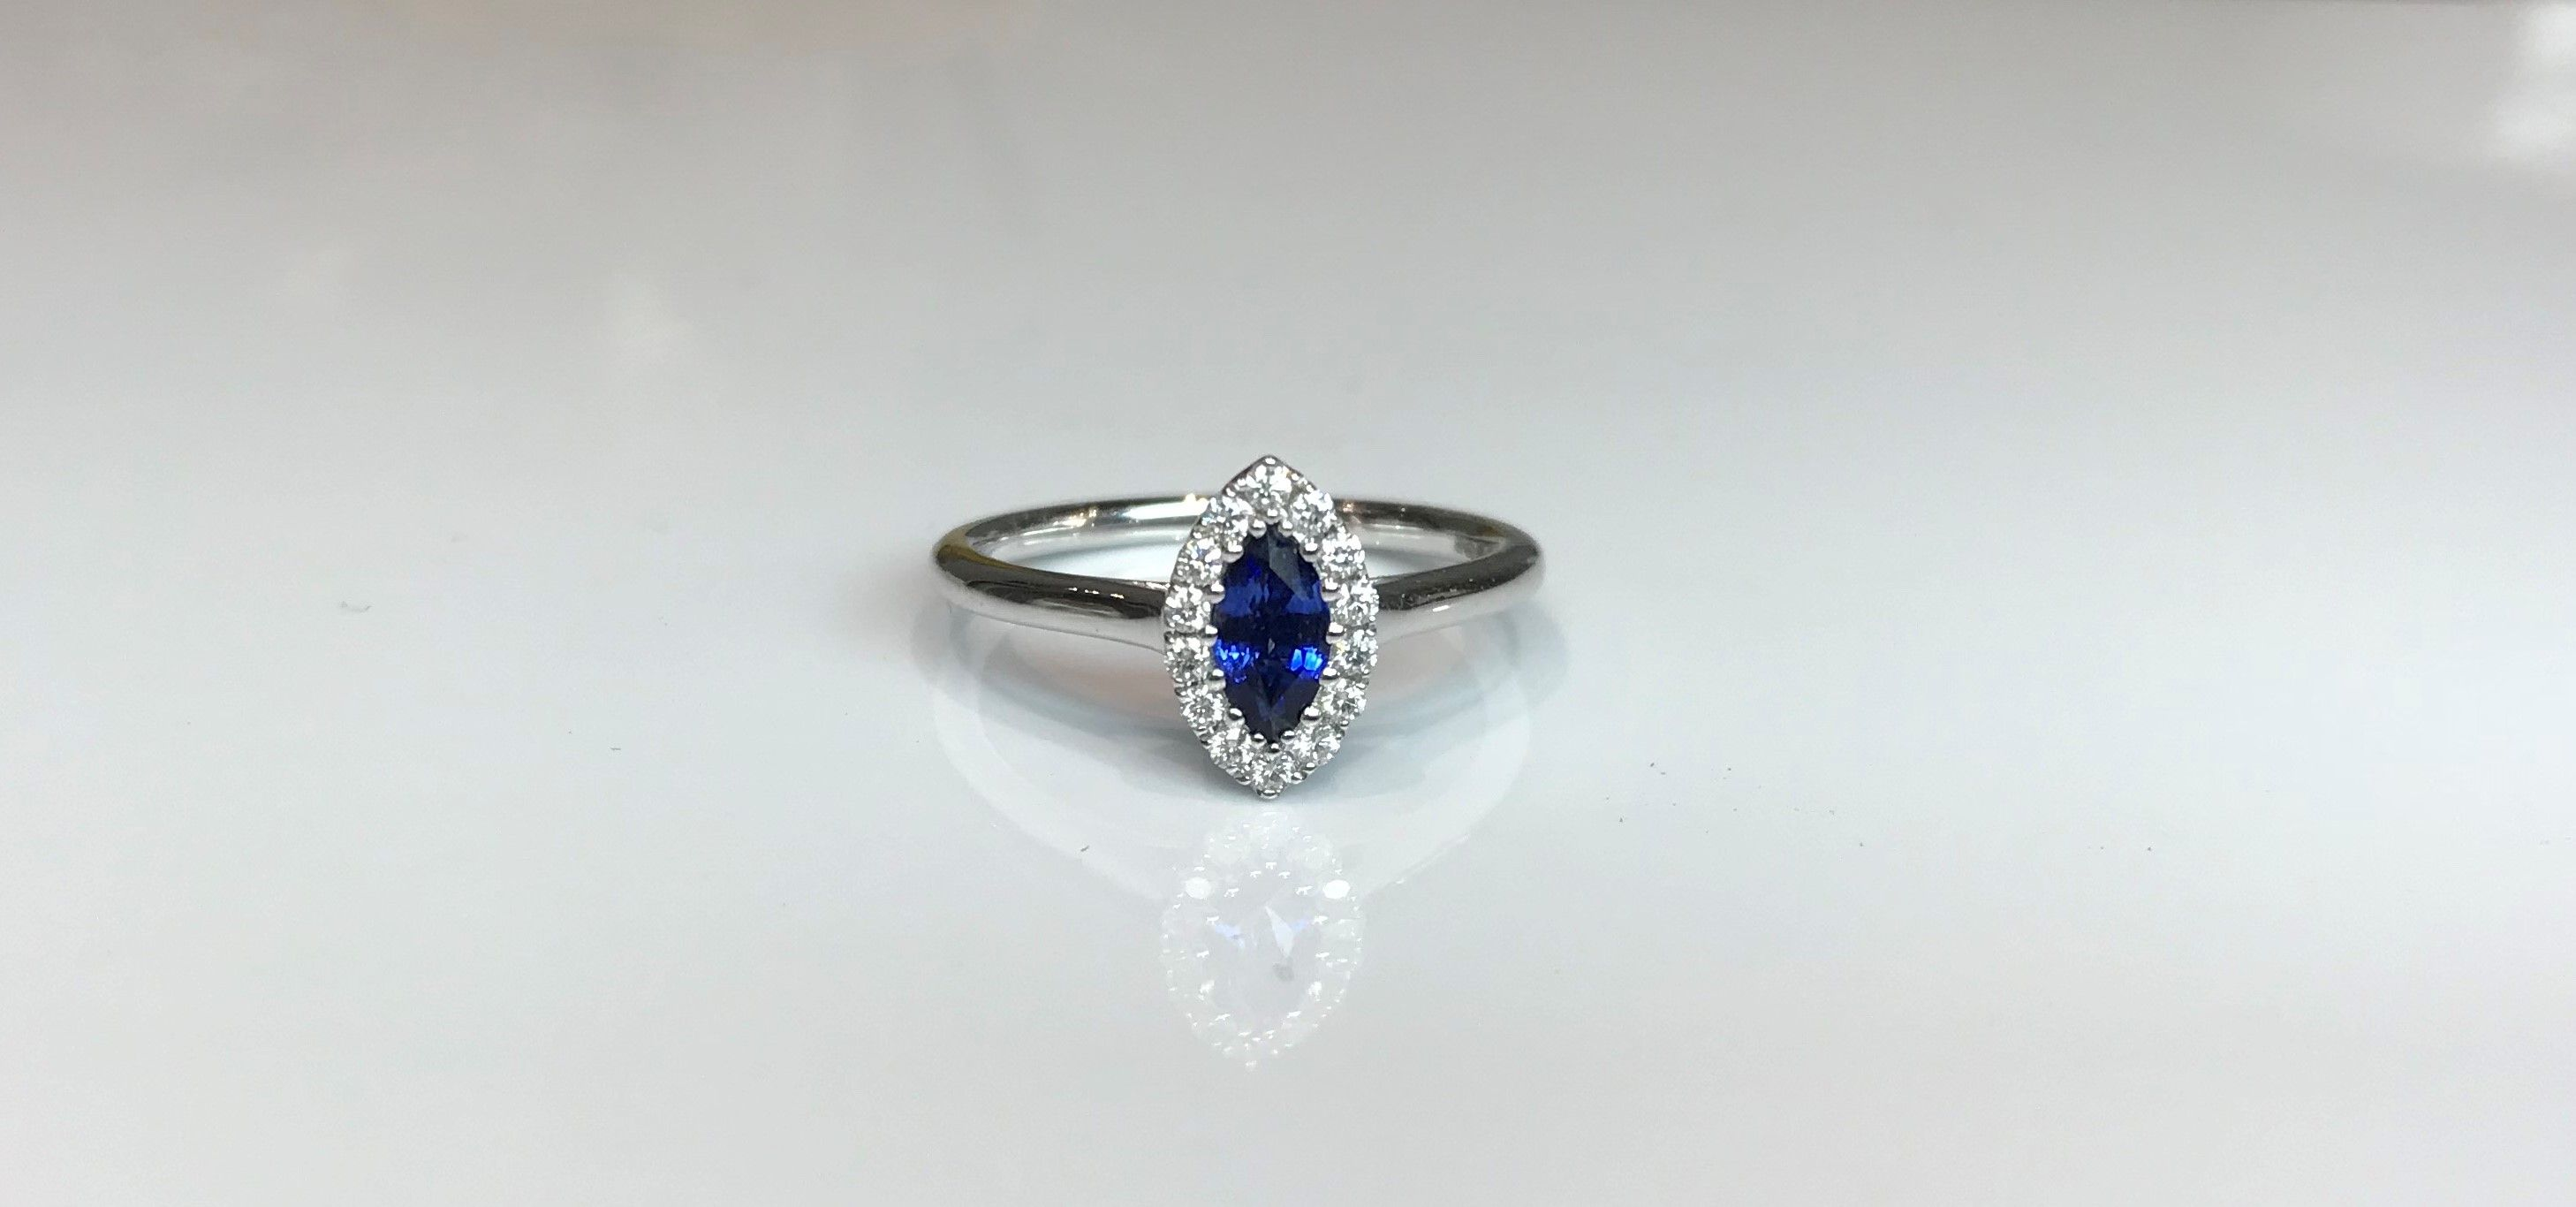 fine wedding rings sapphire bs blue stone uk modern los jewellery triple london marquise angeles ring